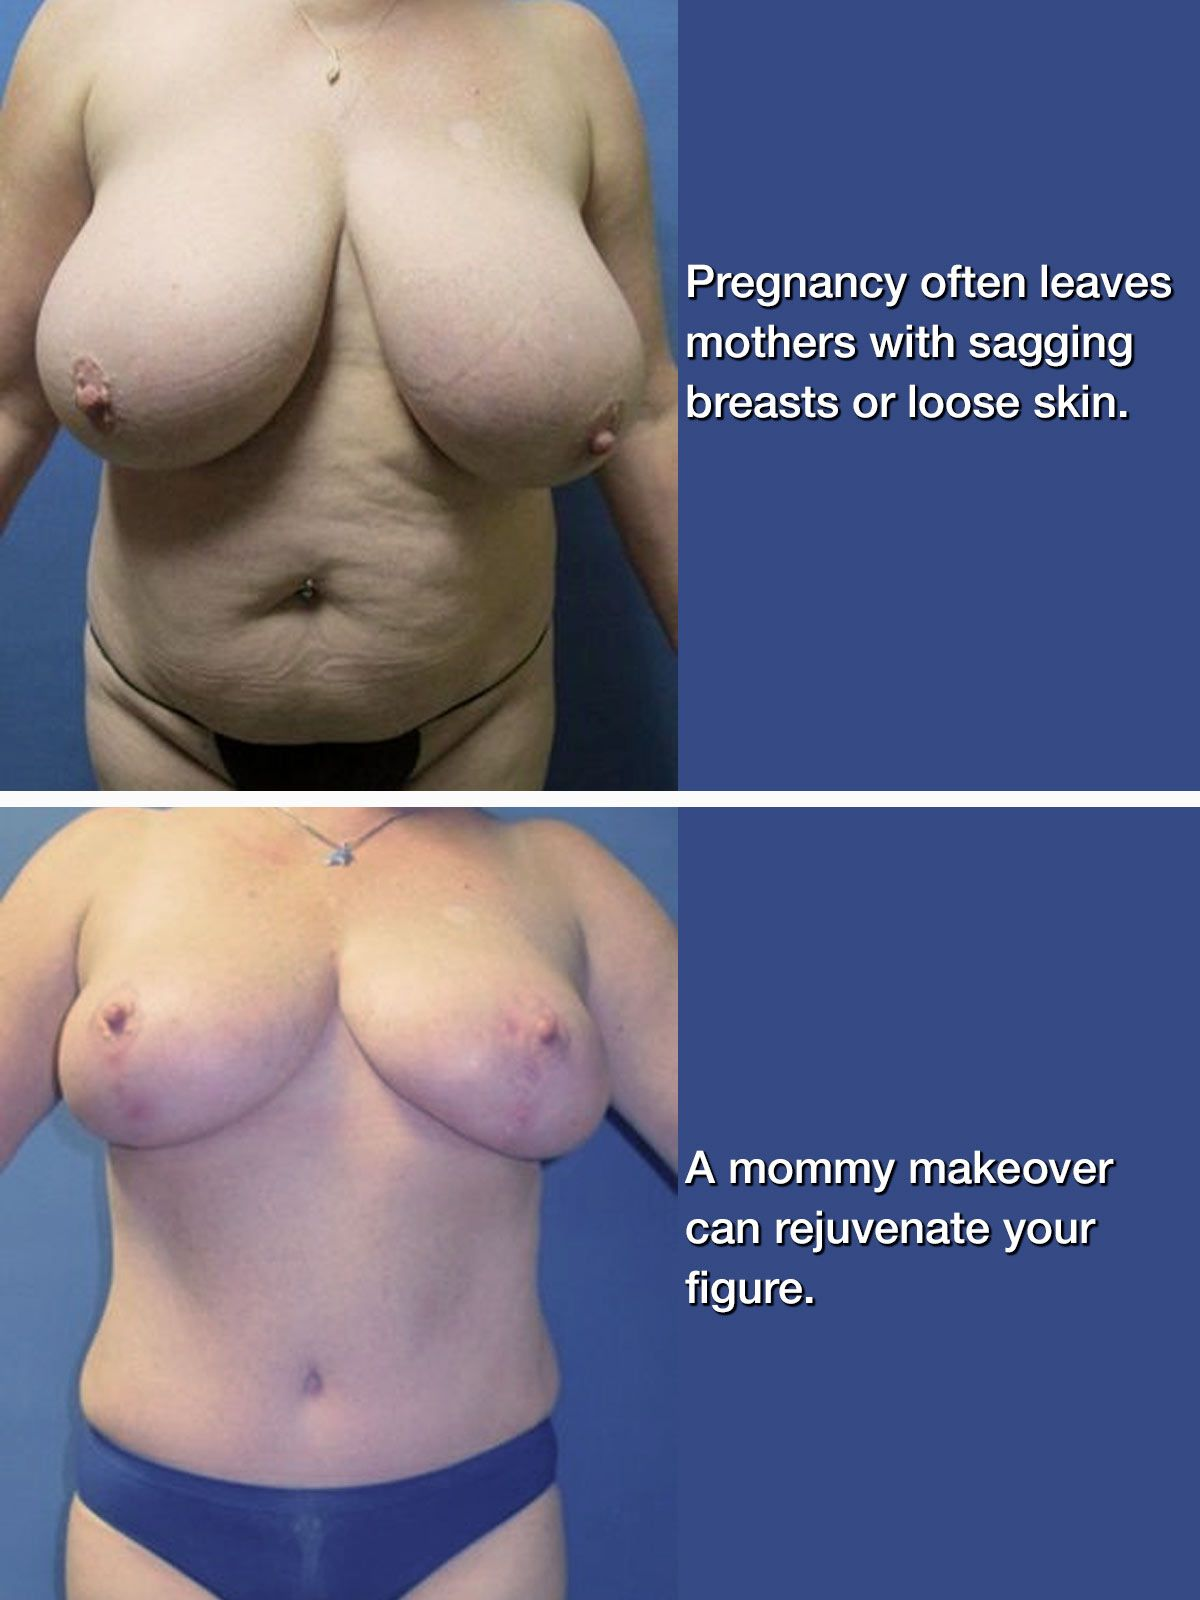 Woman's breasts before and after a mommy makeover procedure